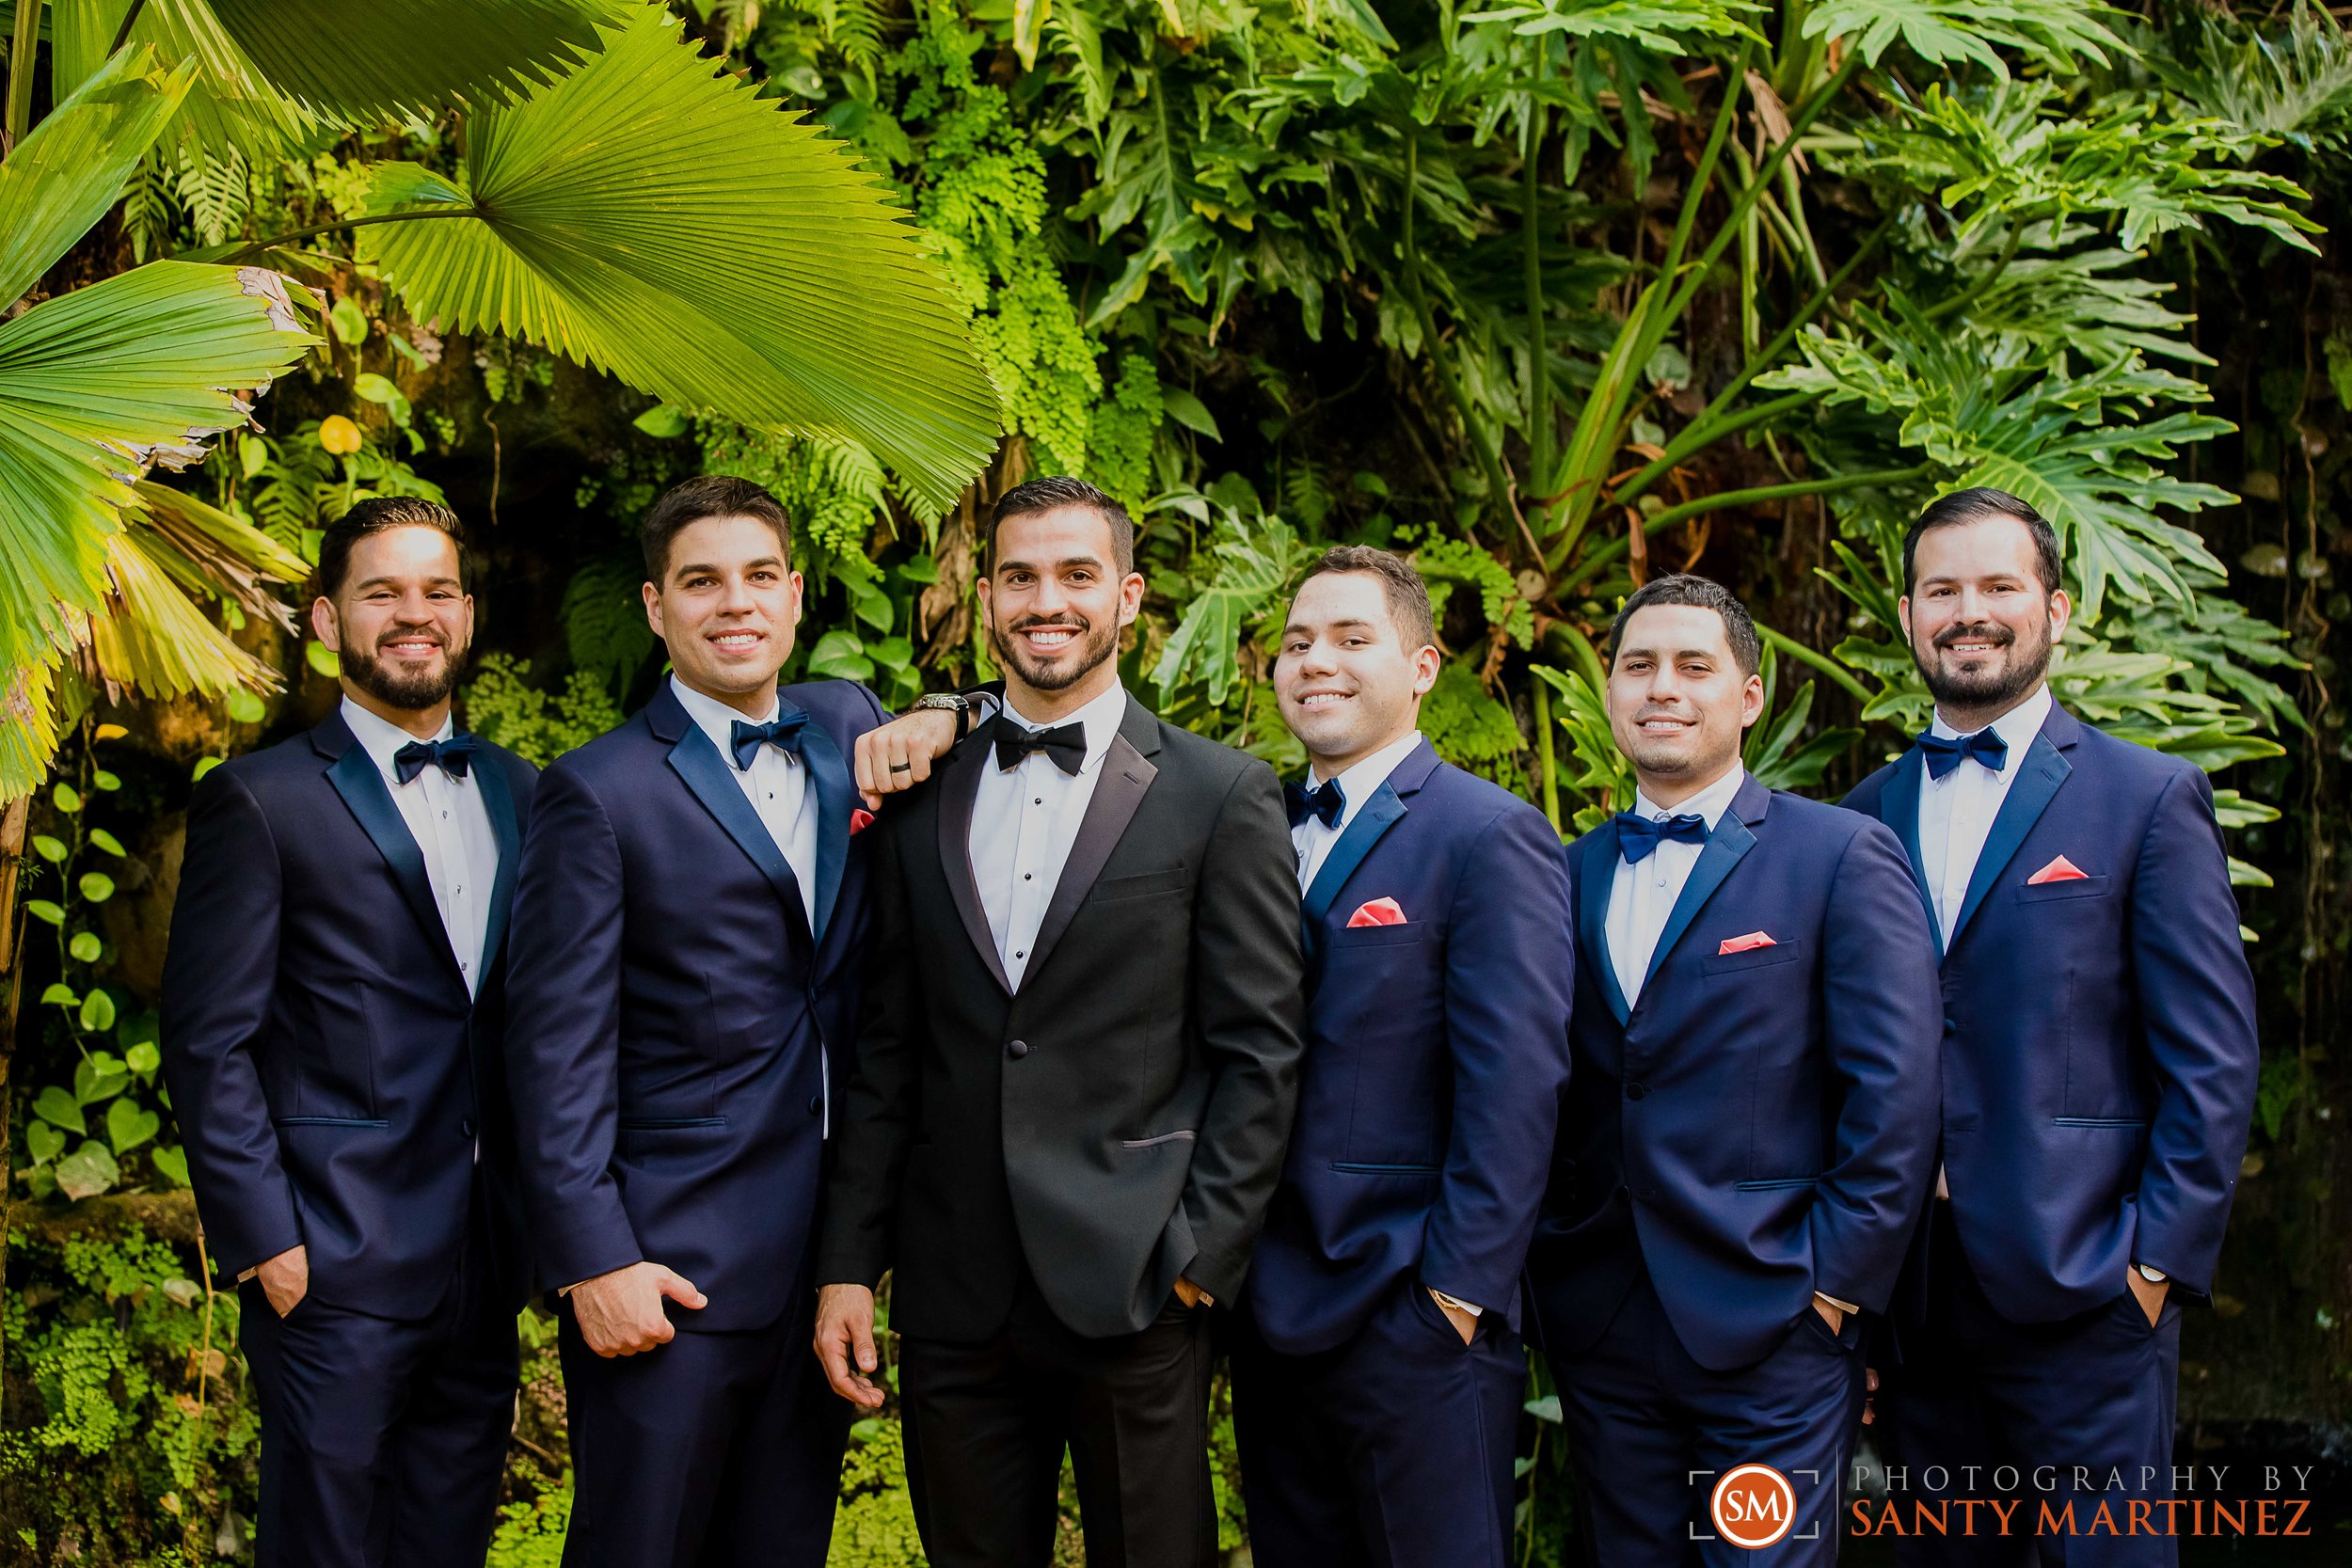 Wedding+at+the+The+Miller+Plantation+-+Santy+Martinez-33.jpg